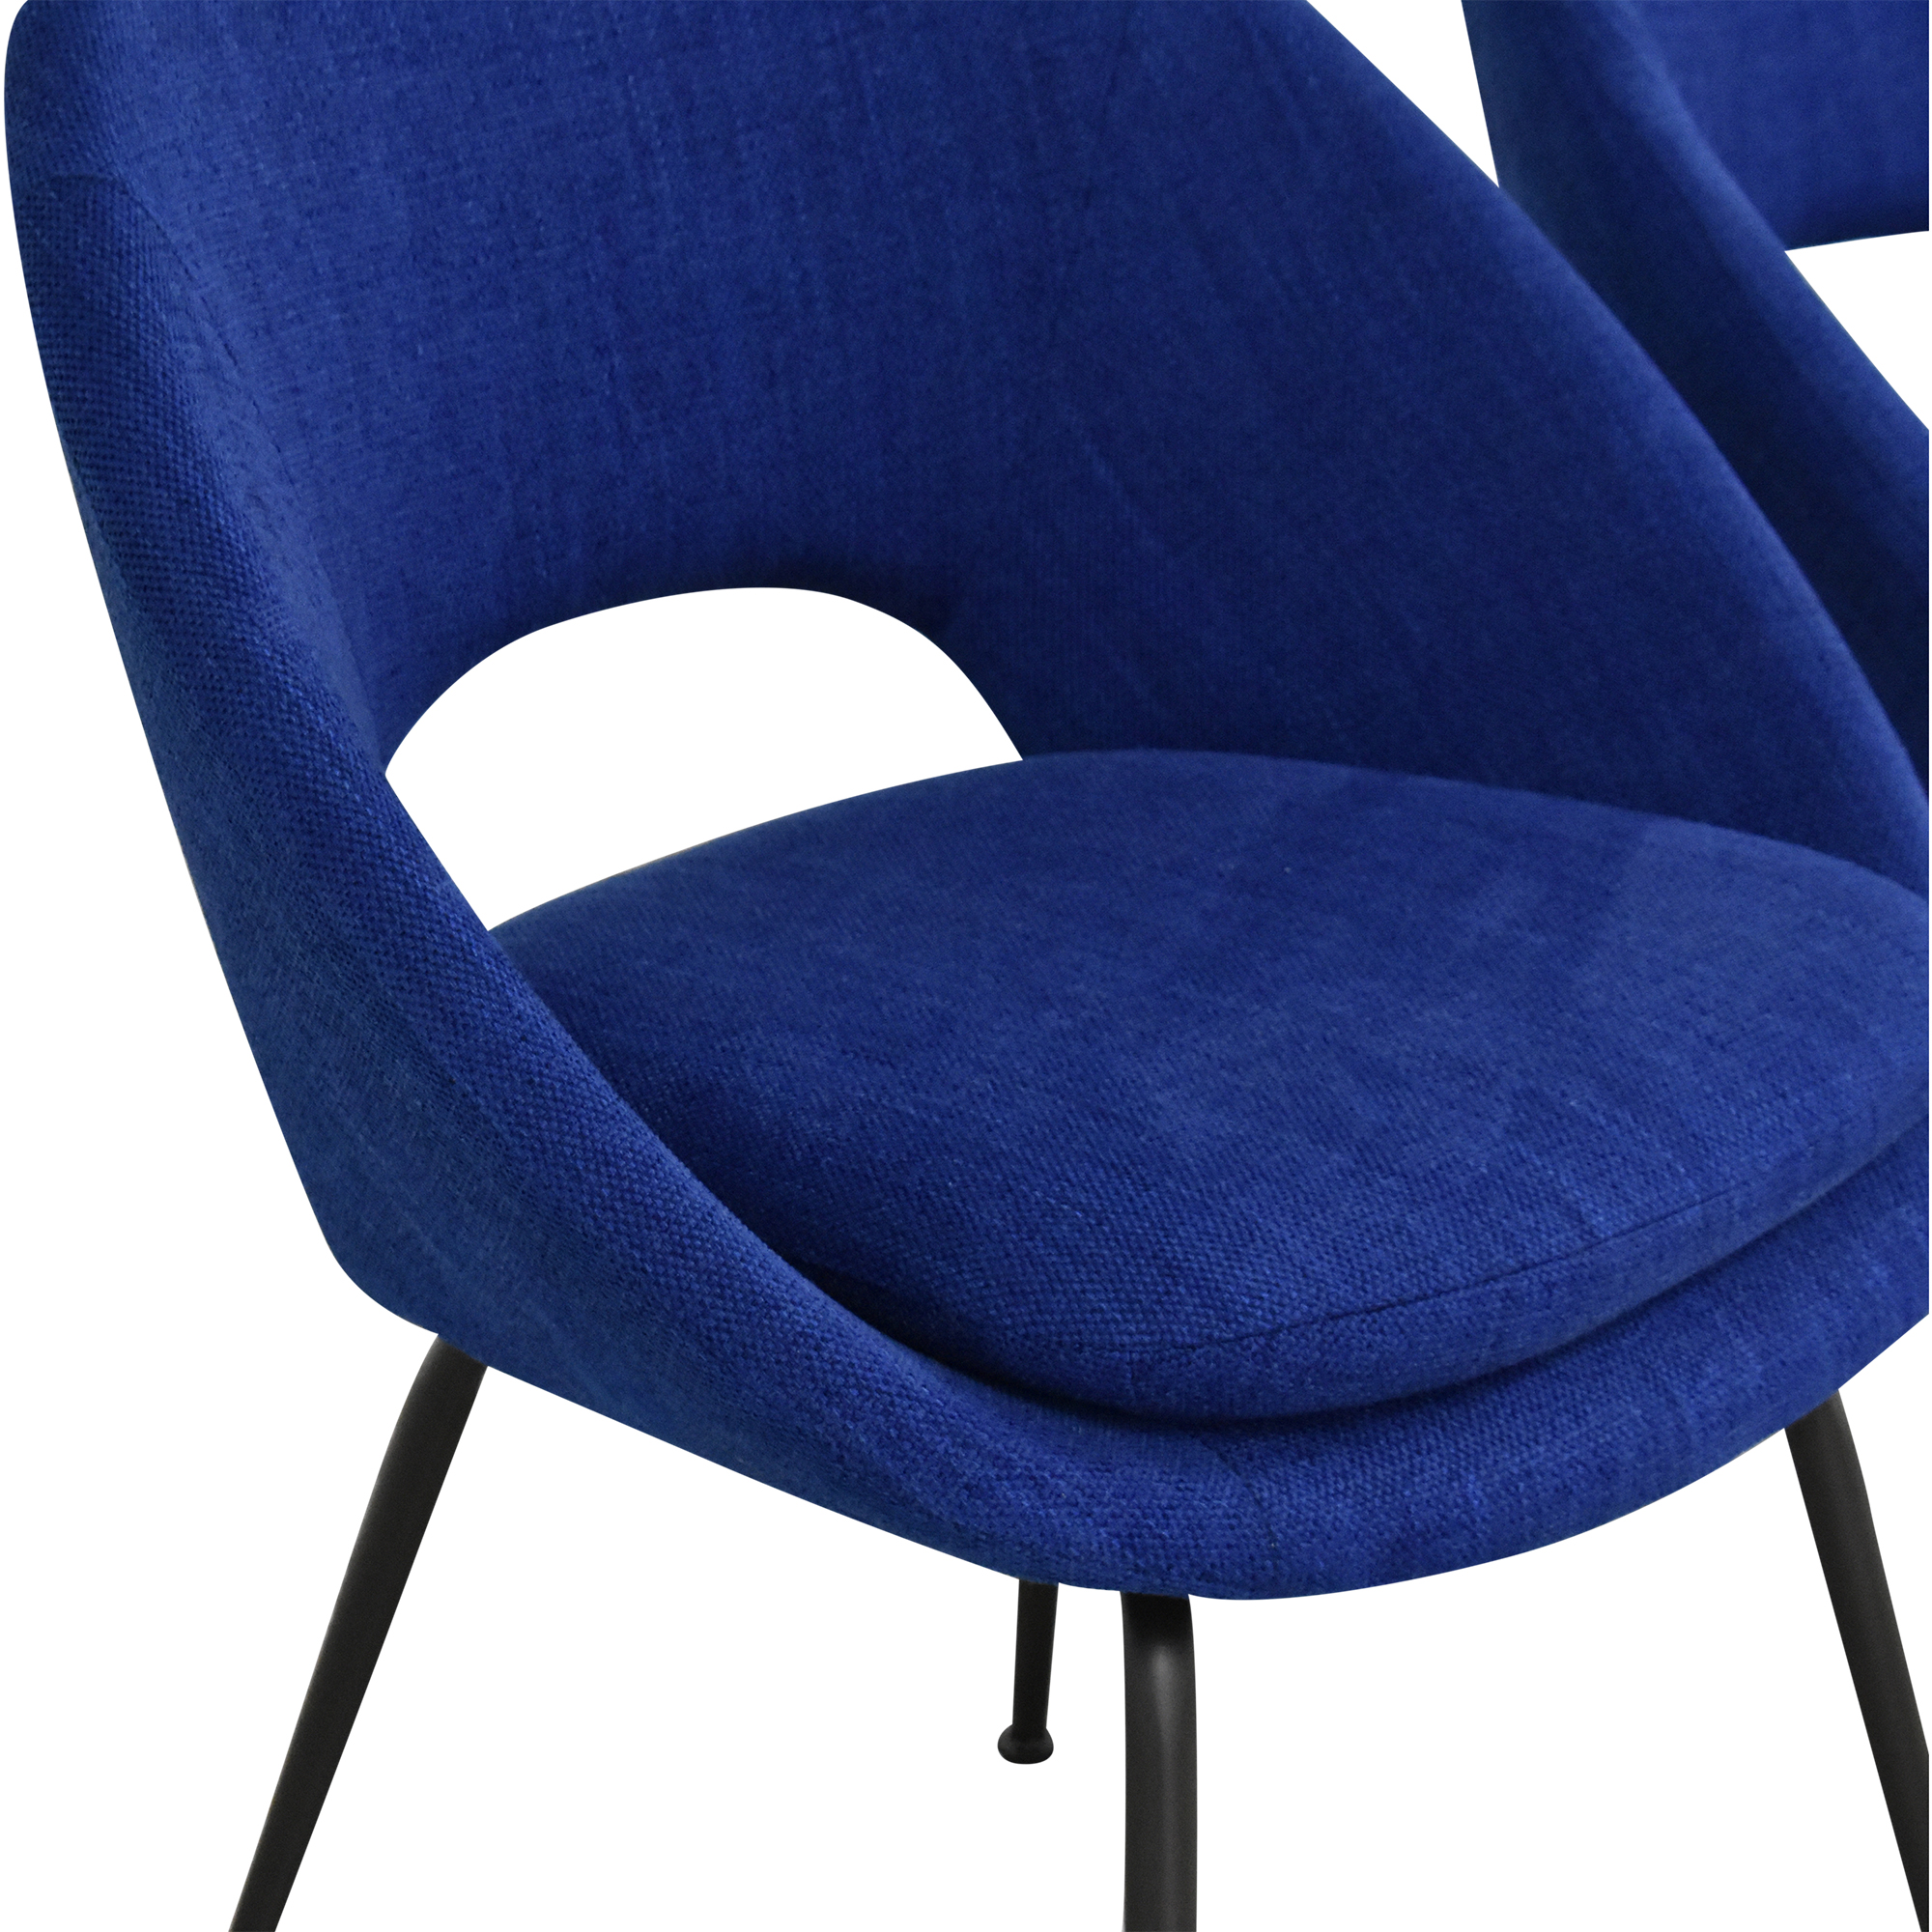 West Elm West Elm Orb Upholstered Dining Chairs